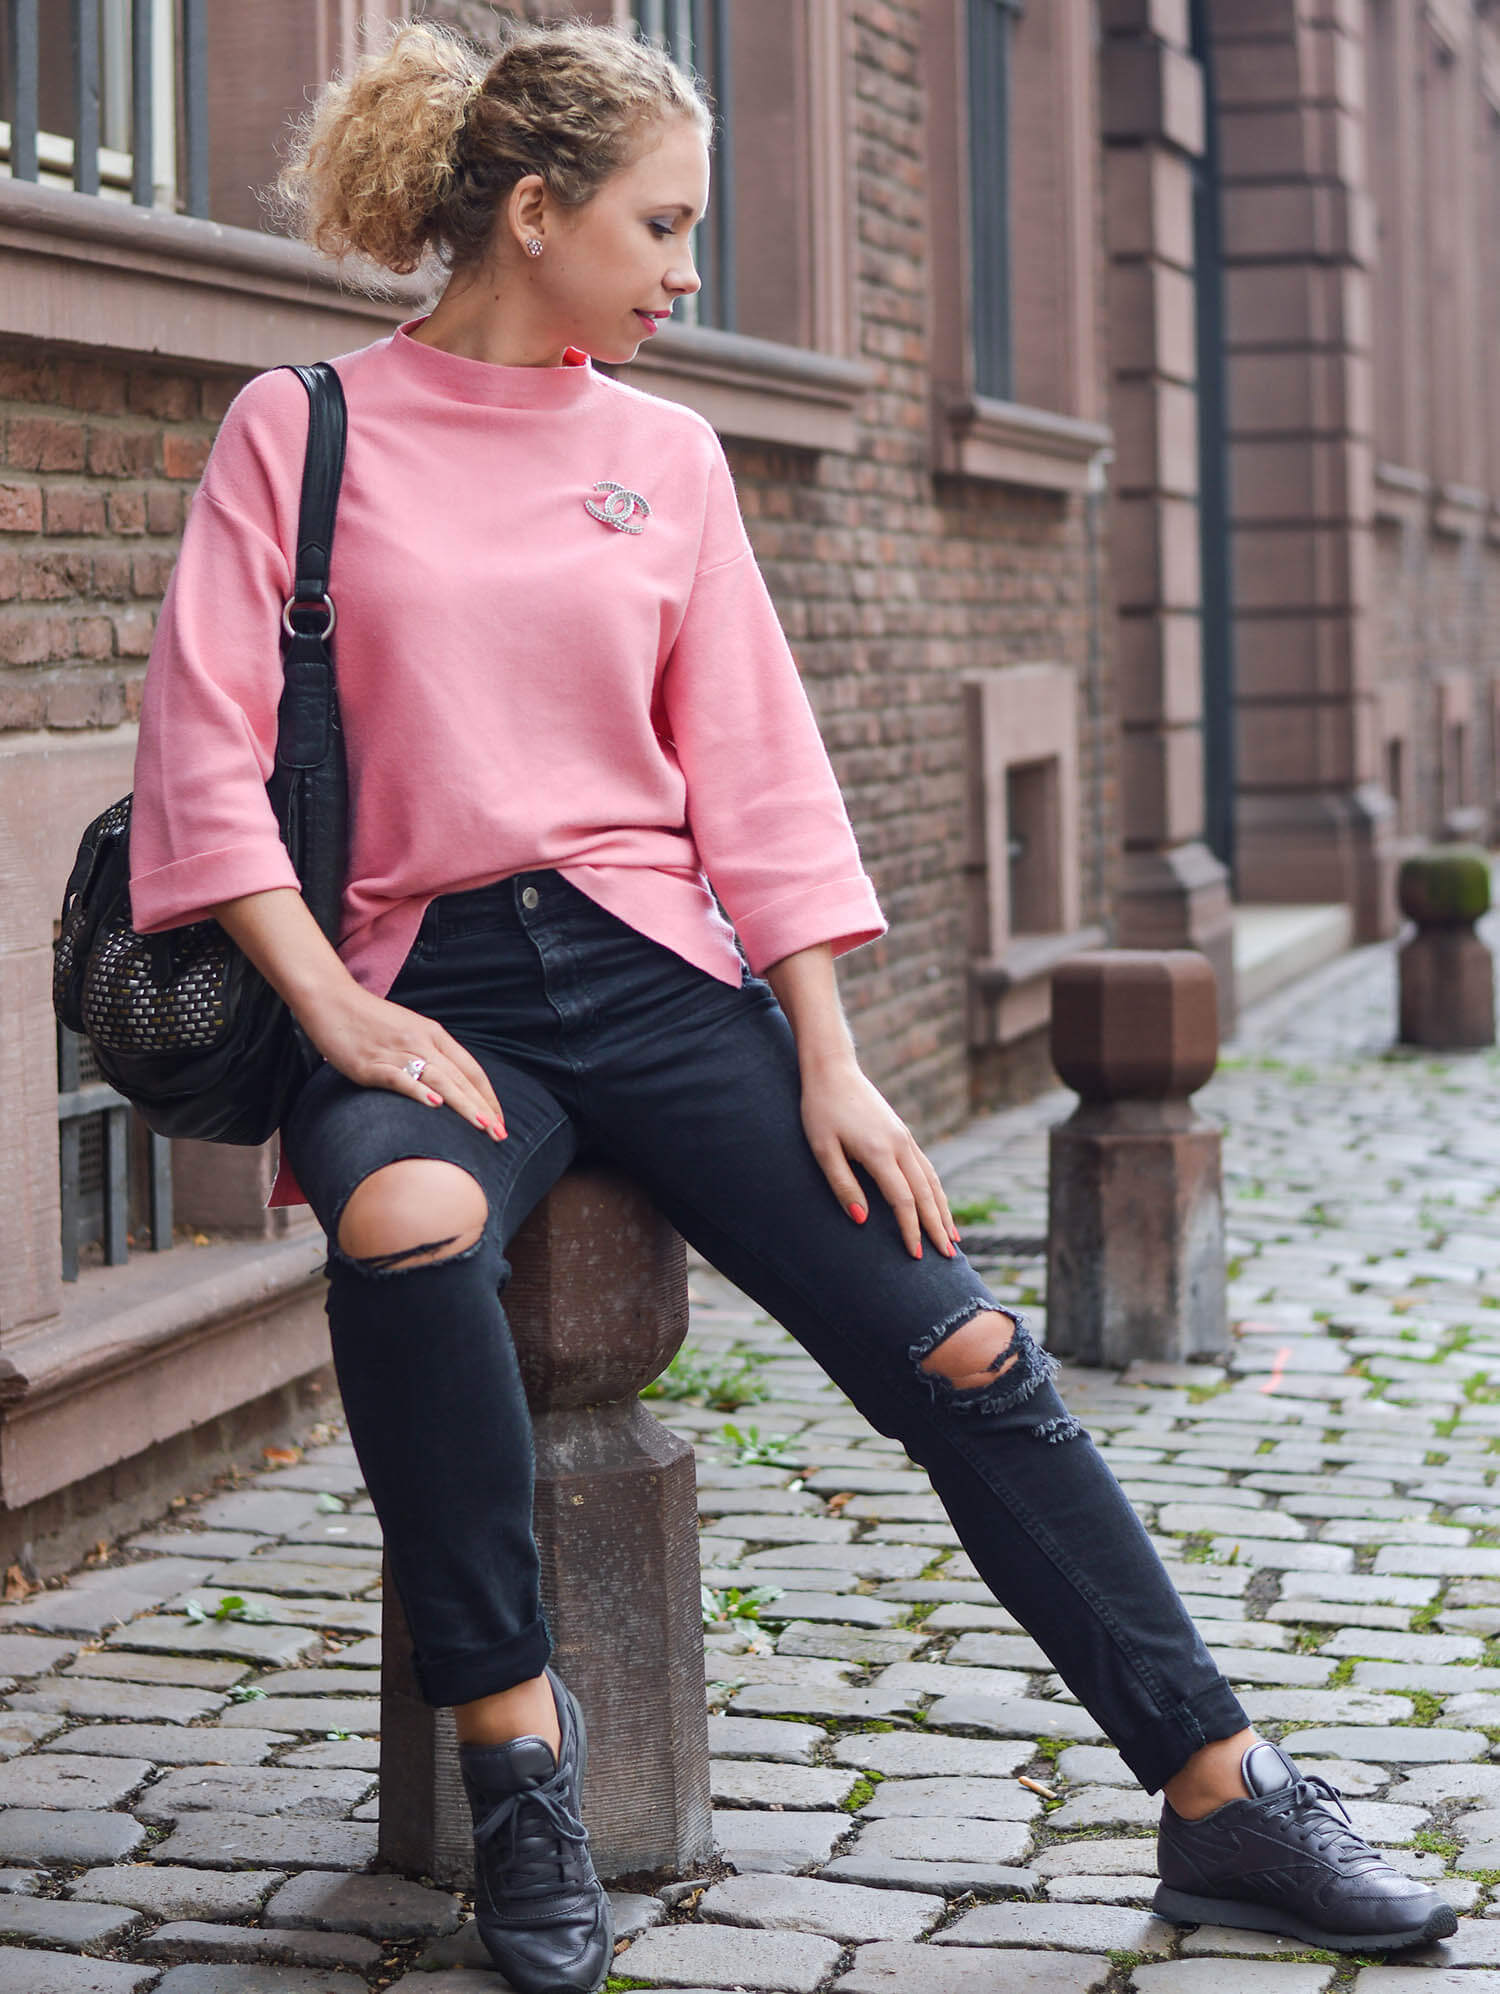 Kationette-fashionblog-nrw-Outfit-Casual-Weekend-Look-with-Pink-Sweater-Ripped-Jeans-Reebok-Sneaker